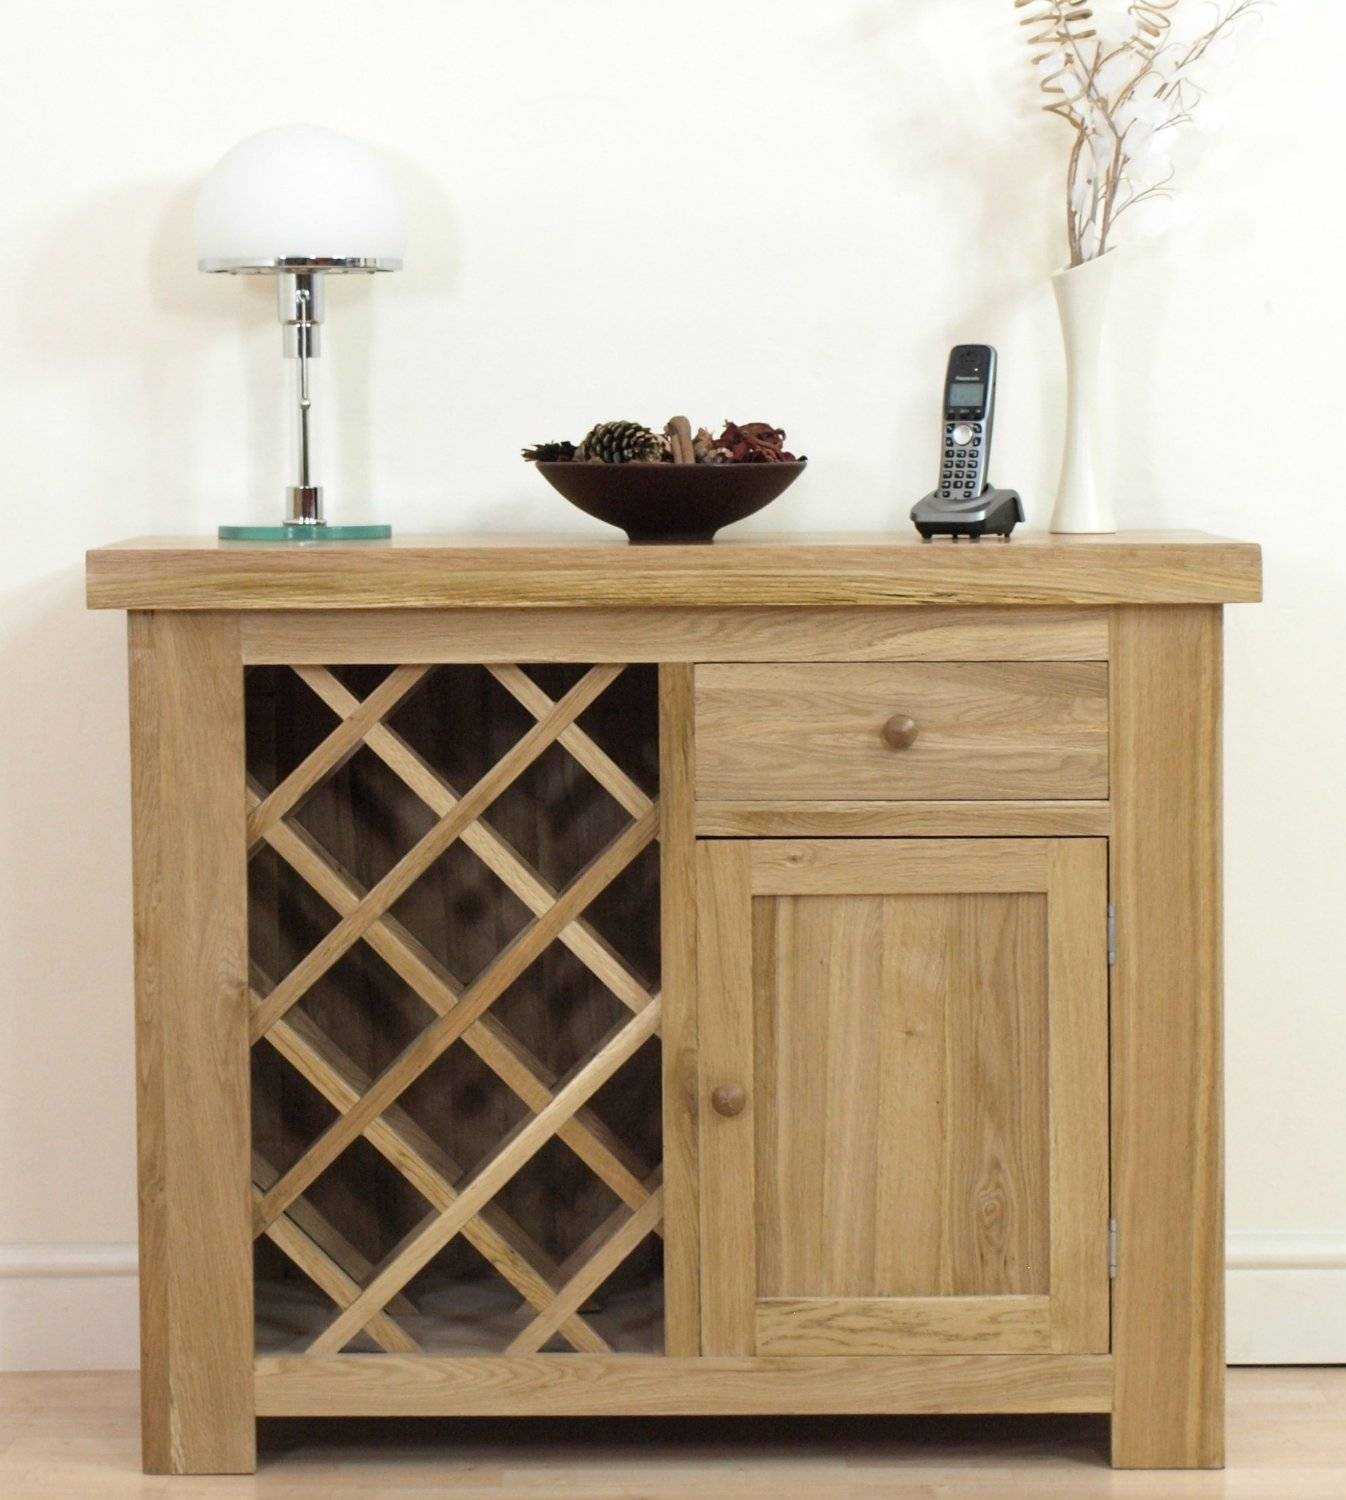 Oak Sideboard With Wine Rack | Home Design Ideas In Best And Newest Sideboards With Wine Rack (#9 of 15)